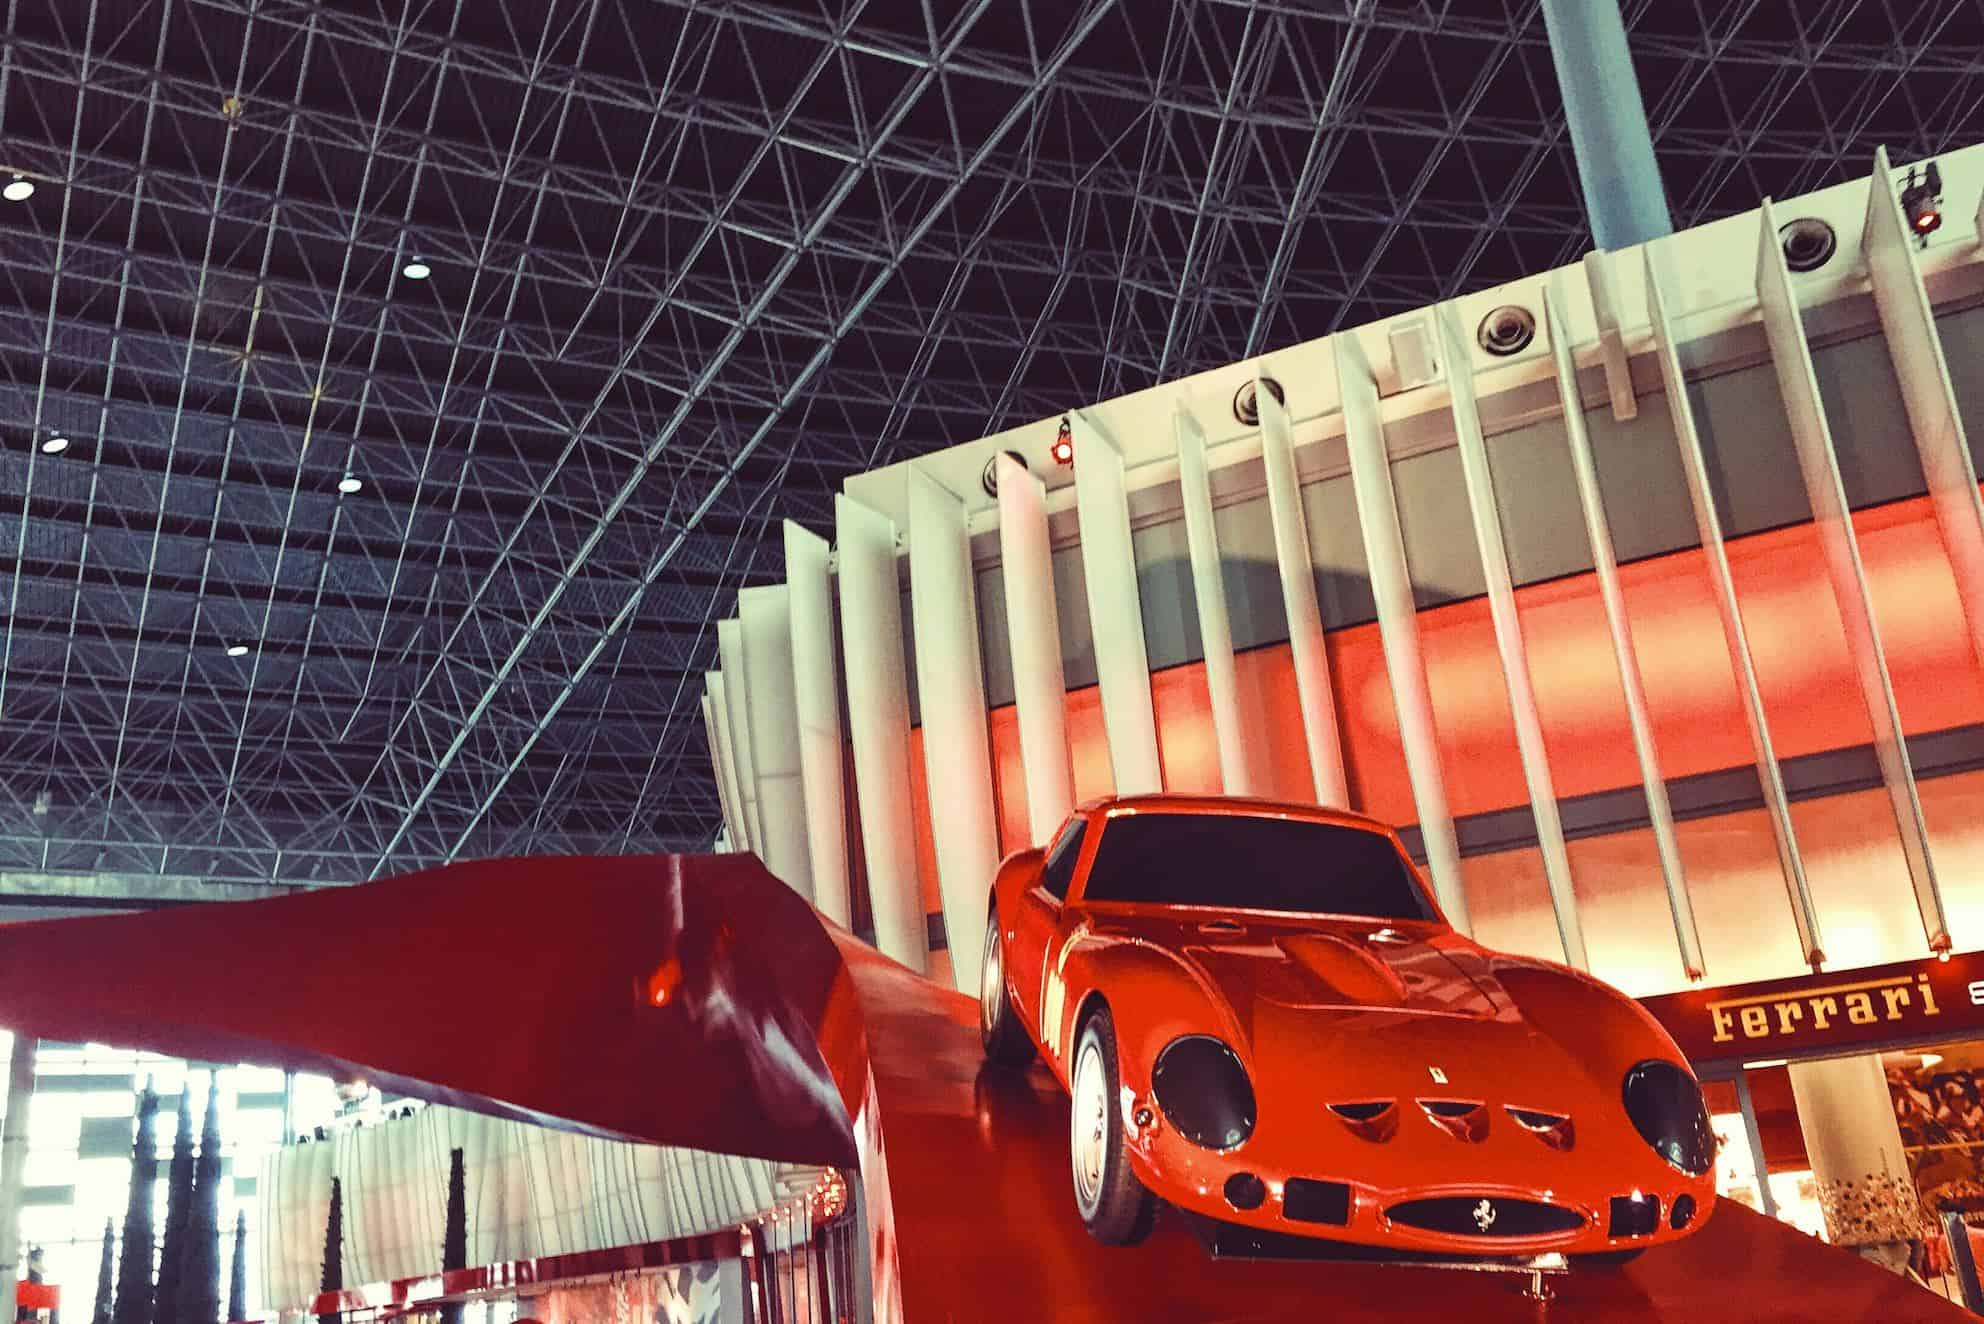 The Fast Lane At Ferrari World, Abu Dhabi